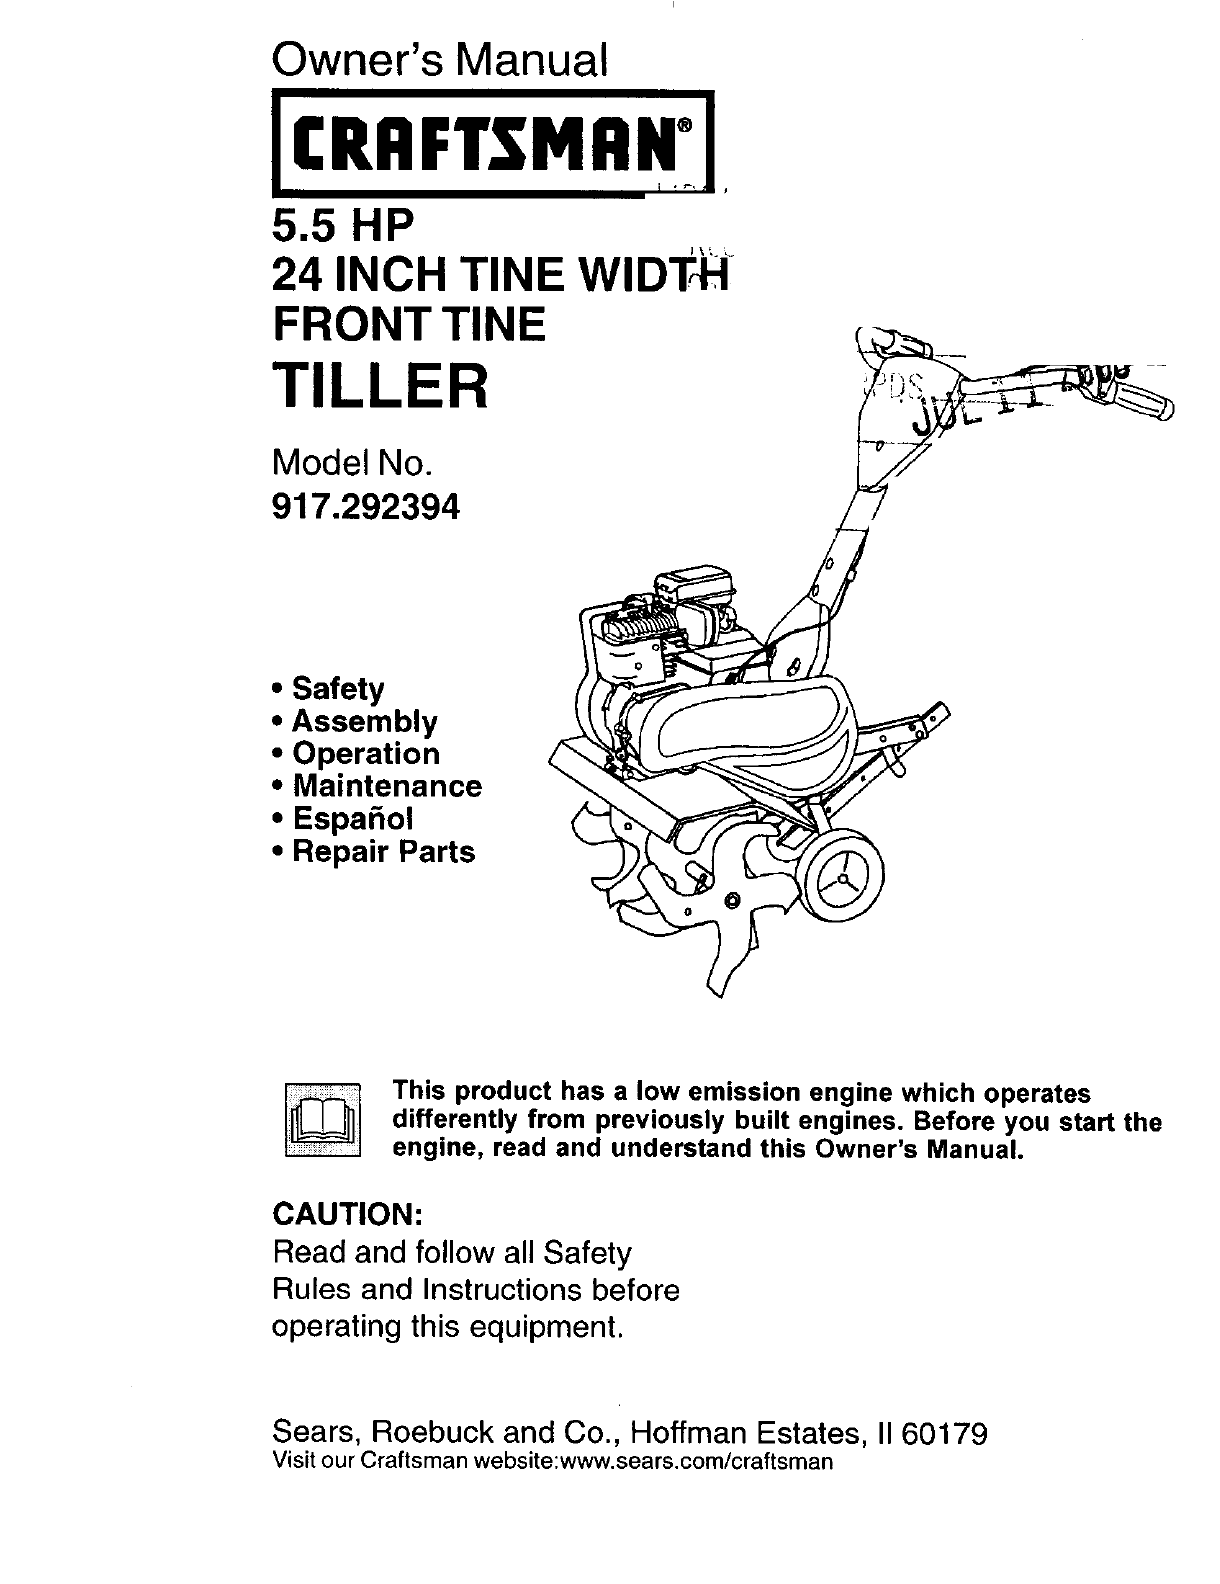 Craftsman 5 Hp 24 Tiller Manual : Craftsman tiller user guide manualsonline